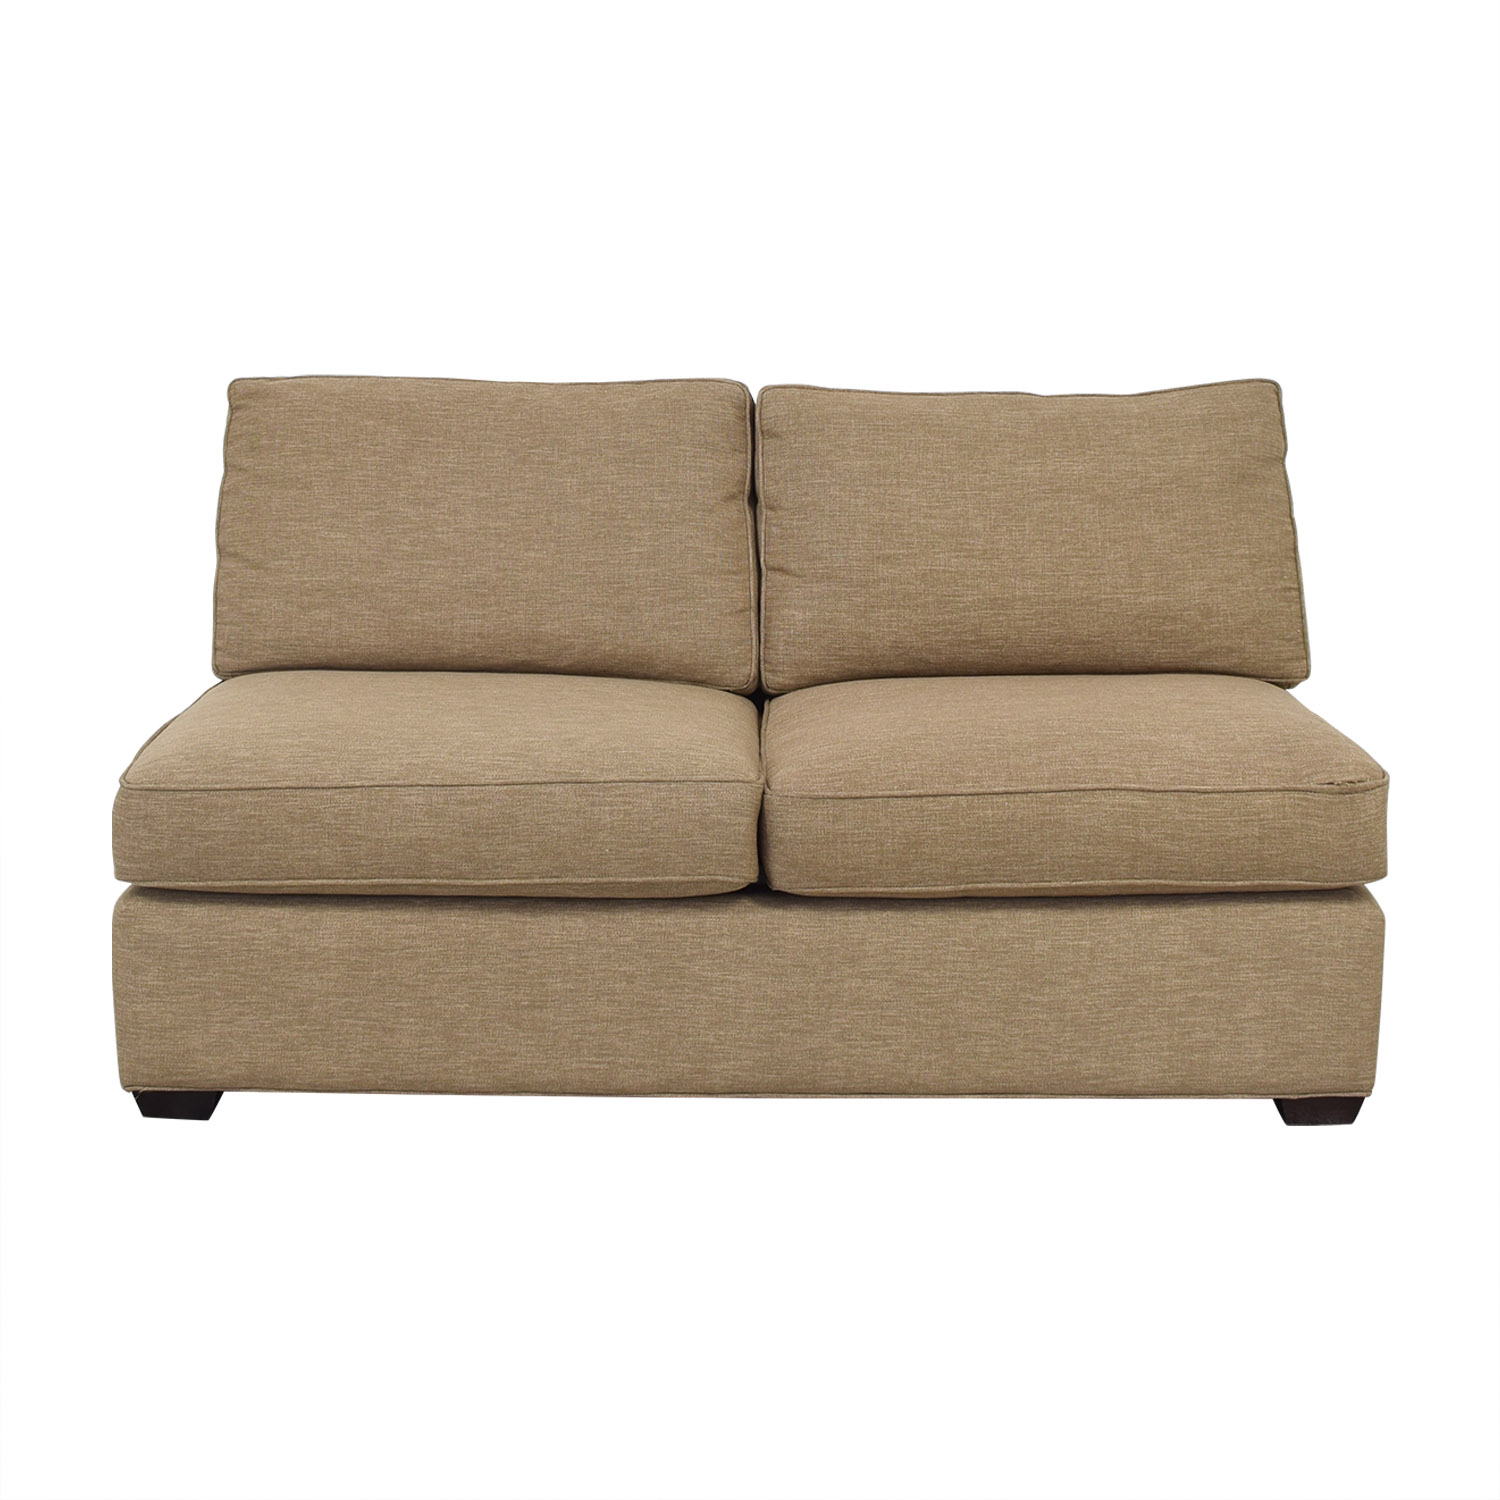 Crate & Barrel Crate & Barrel Davis Armless Loveseat on sale